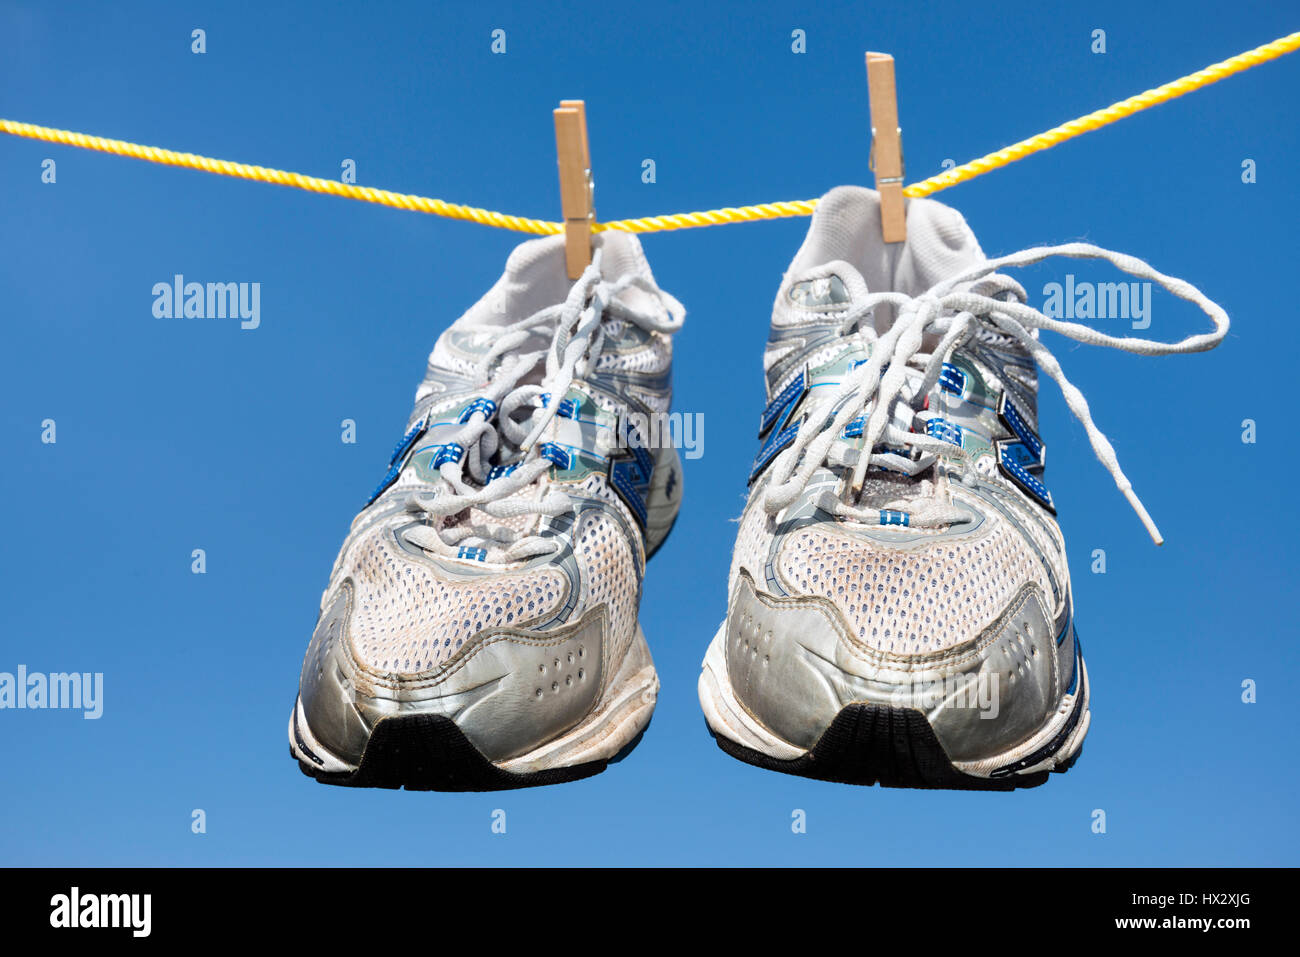 Pair of old trainers hanging on a clothes line. - Stock Image